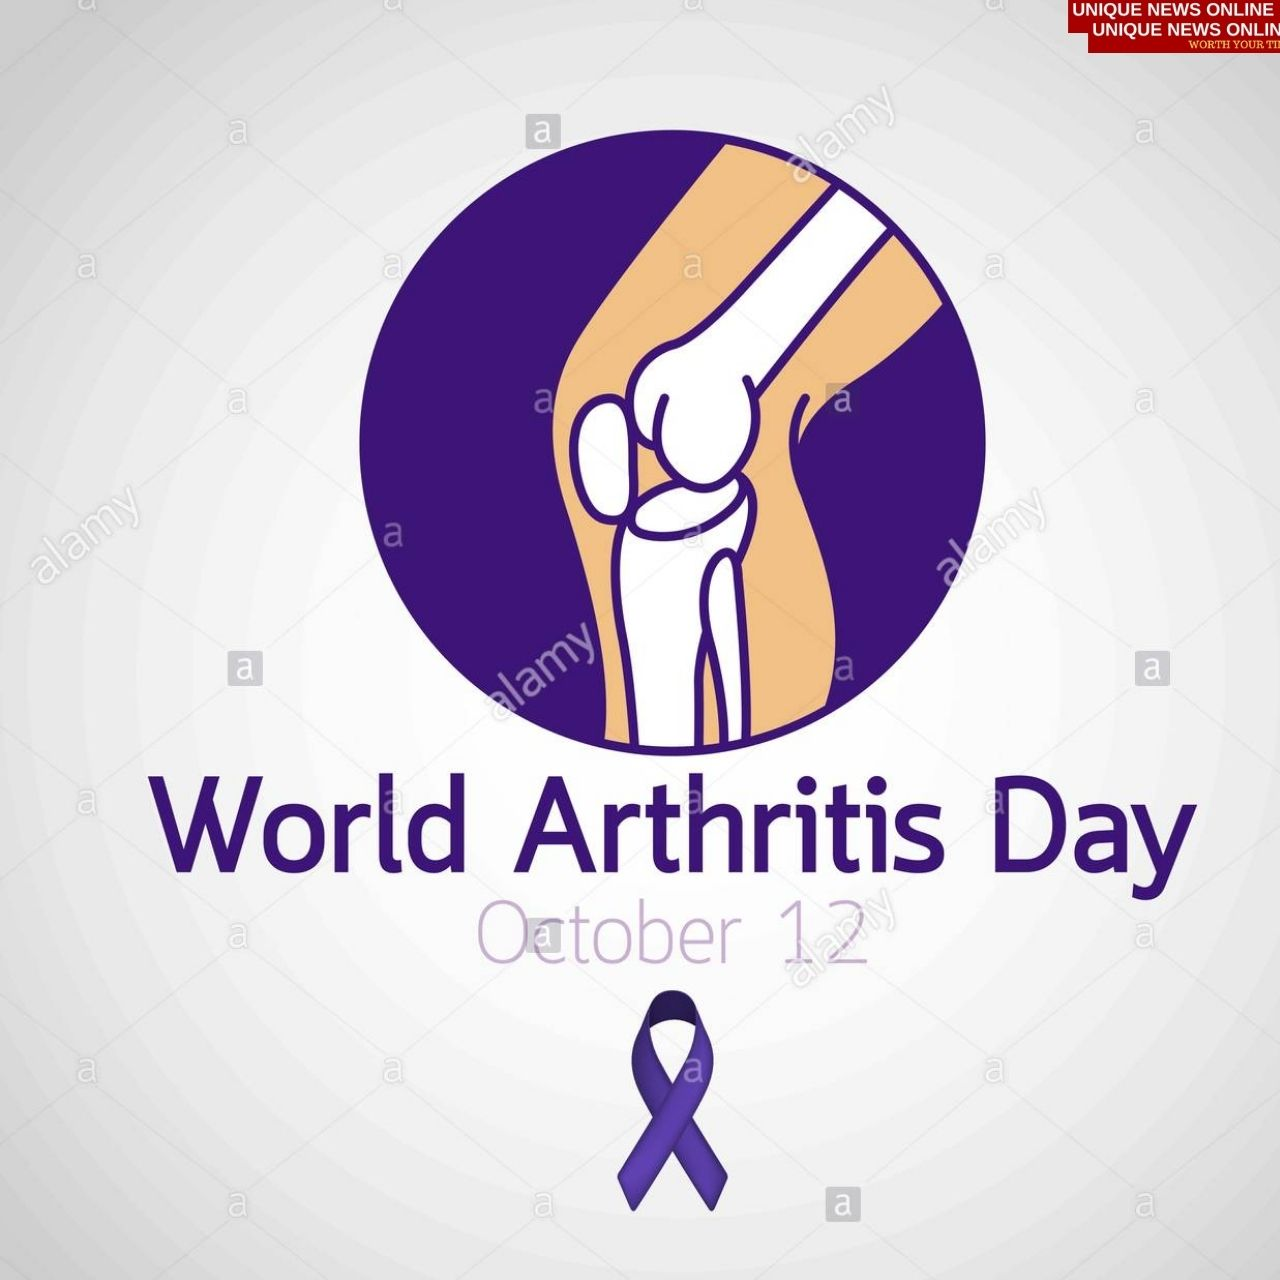 World Arthritis Day 2021 Quotes, Poster, Images, and Slogans to Create awareness